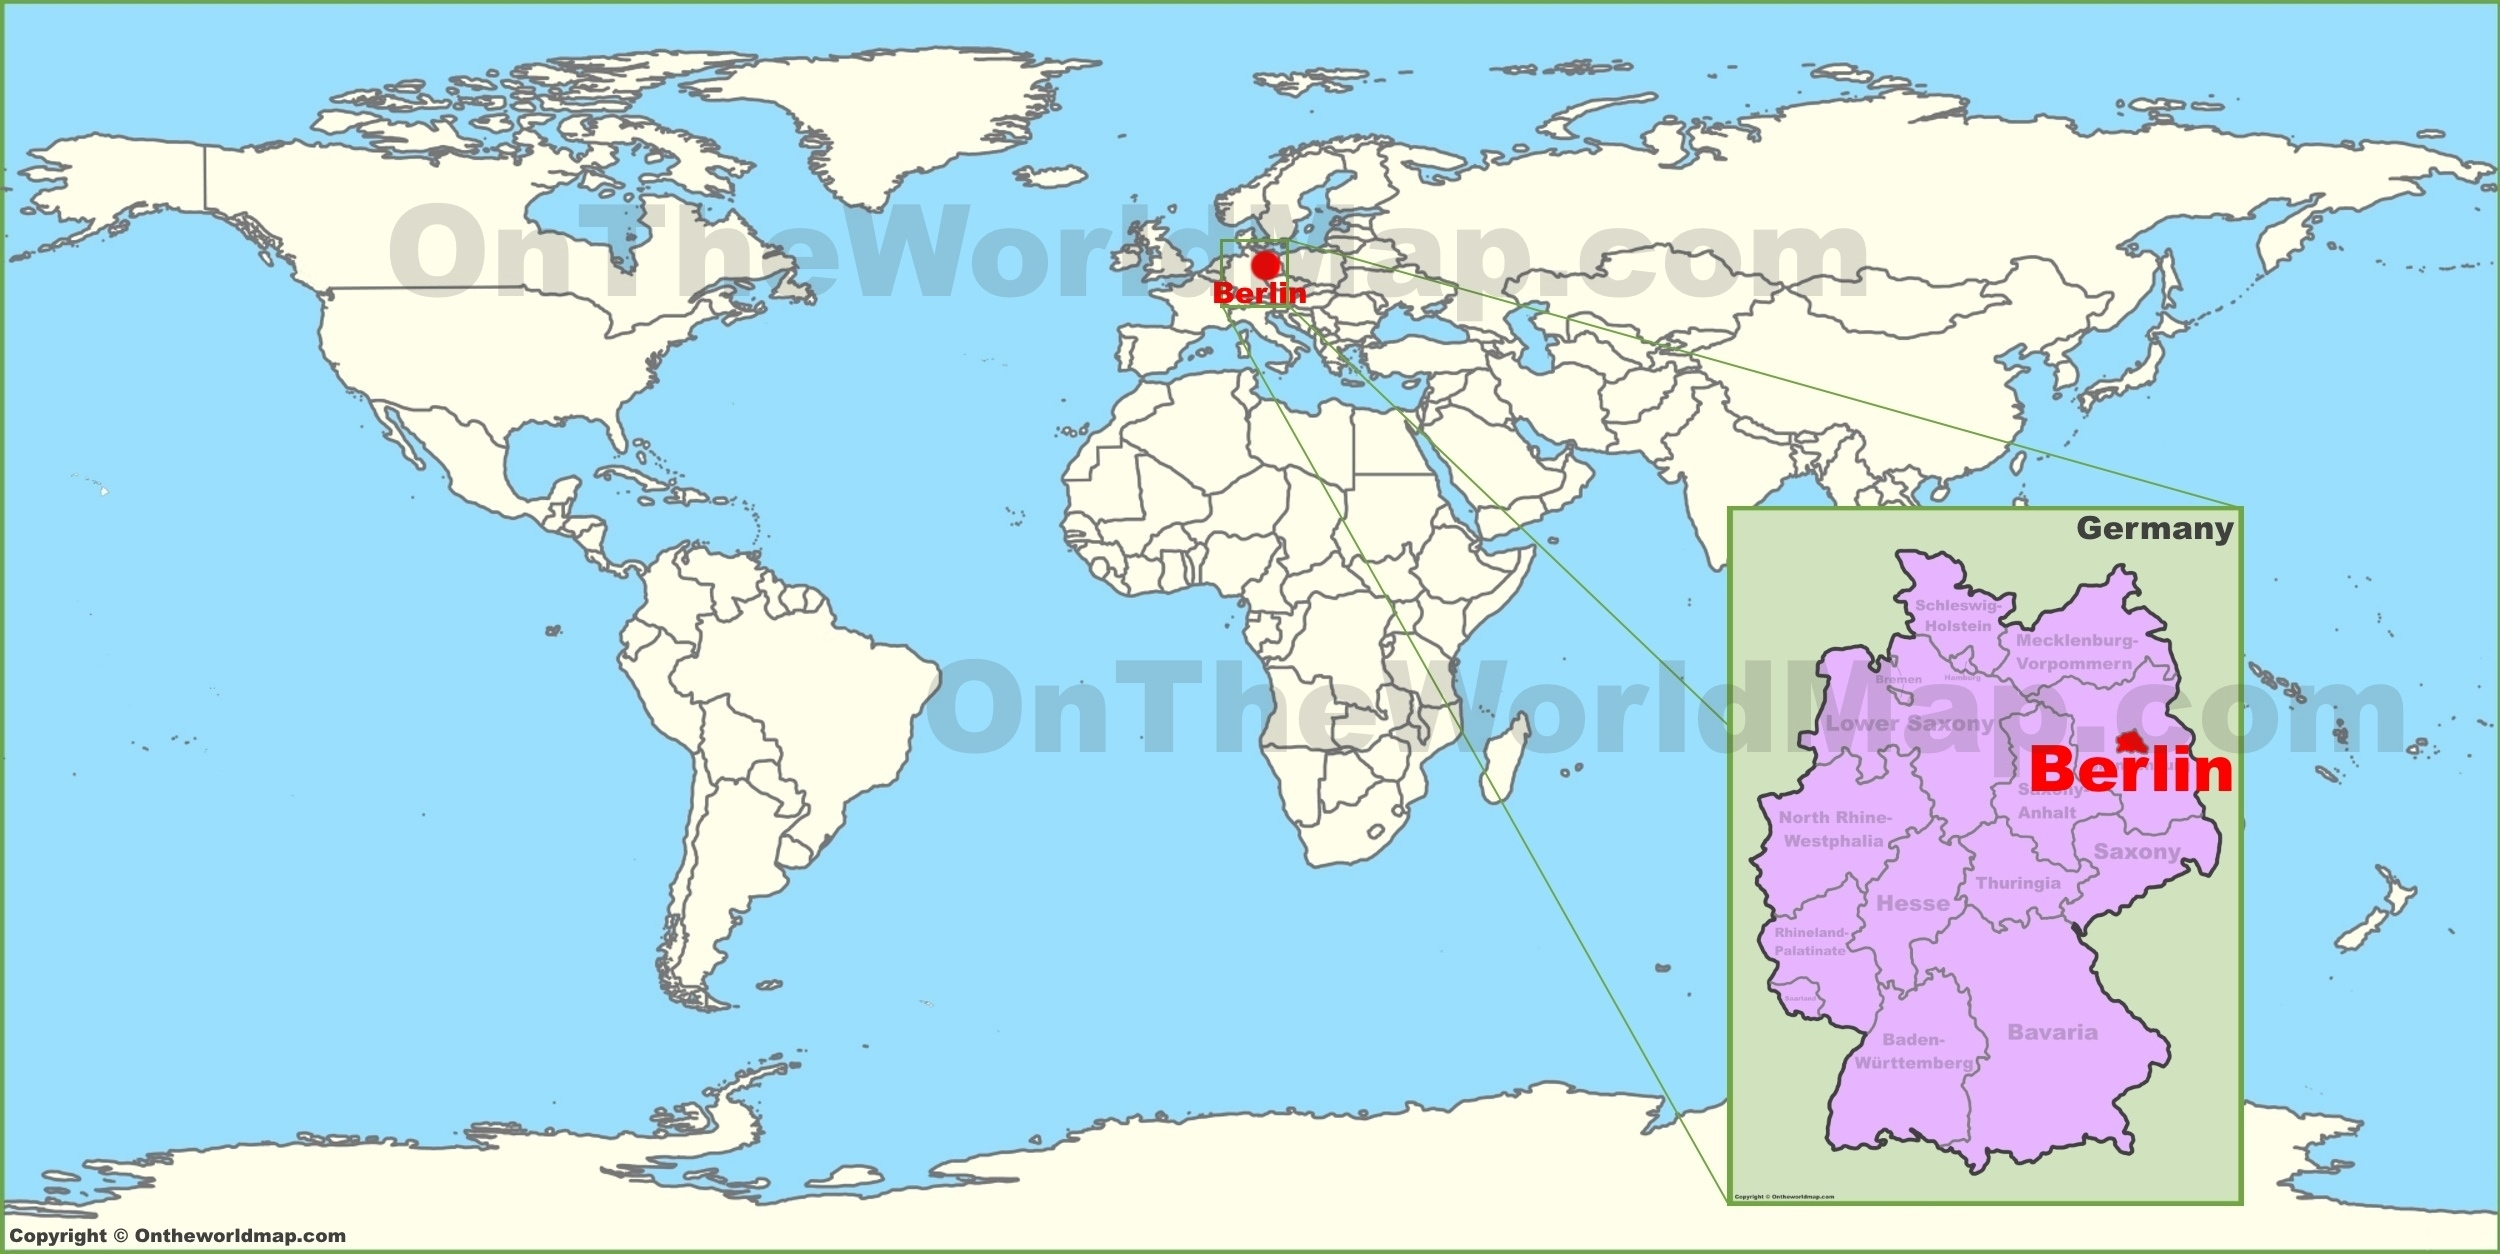 Berlin On The World Map inside Location Of Germany In World Map